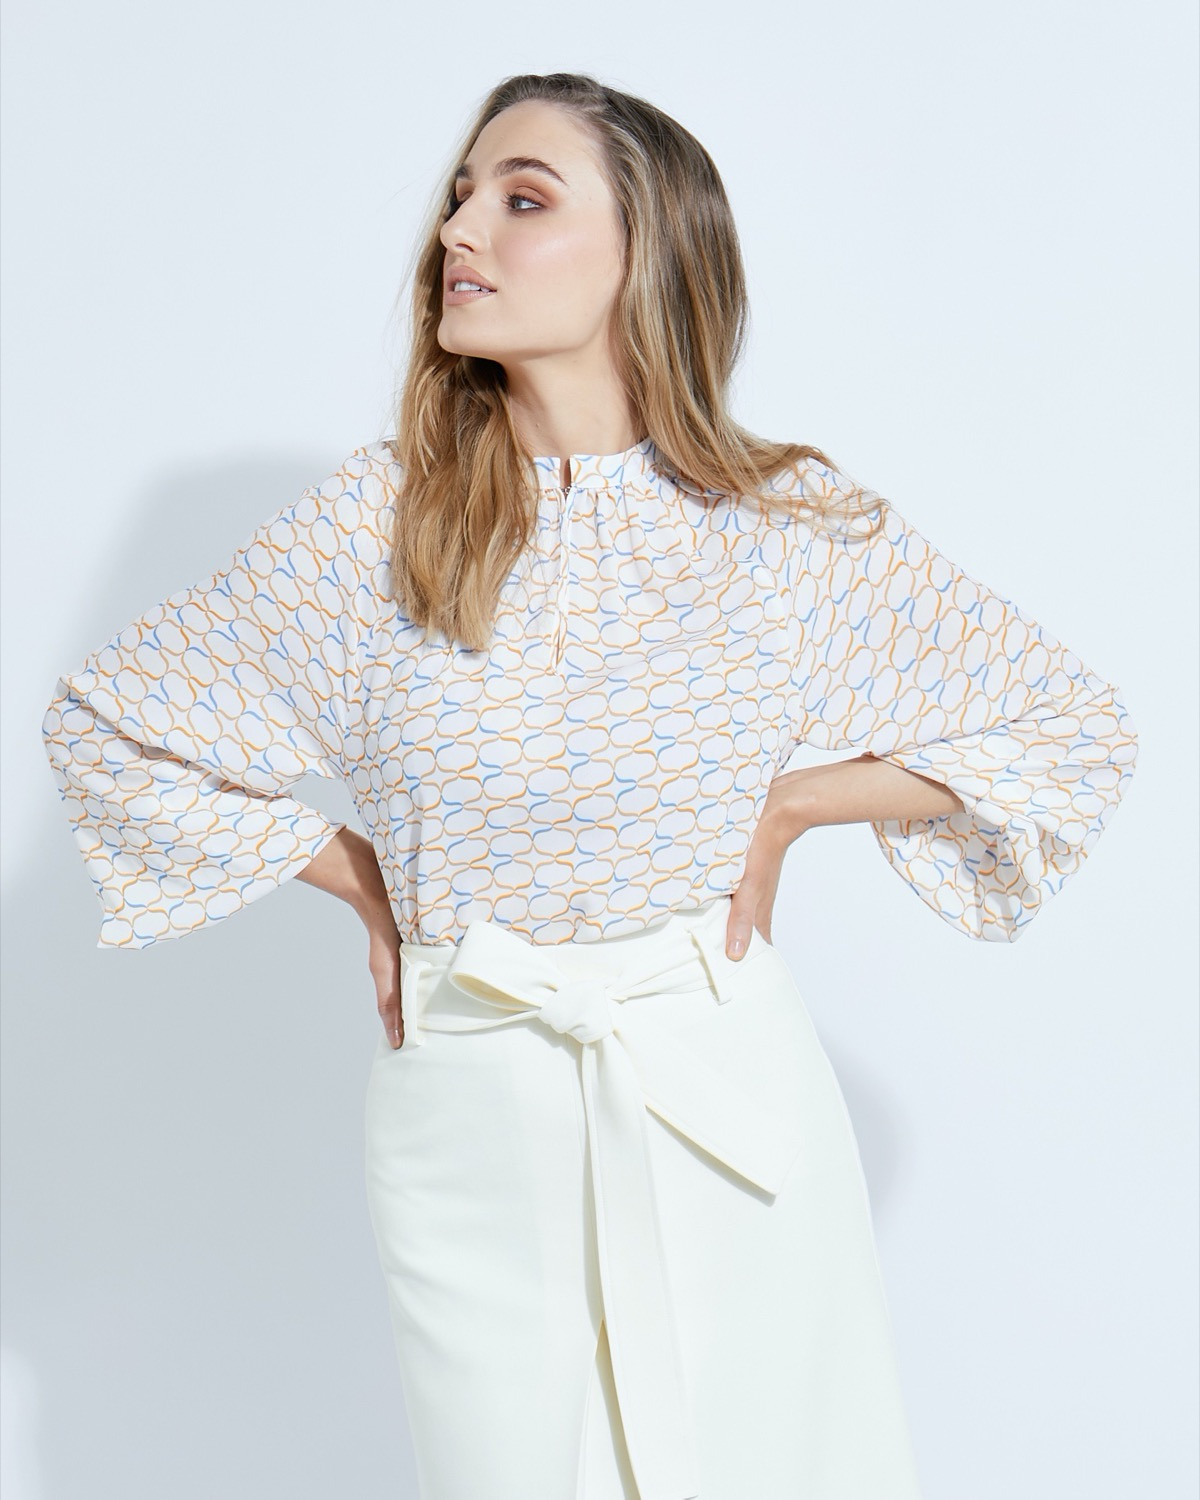 Lennon Courtney at Dunnes Stores Jana Print Blouse